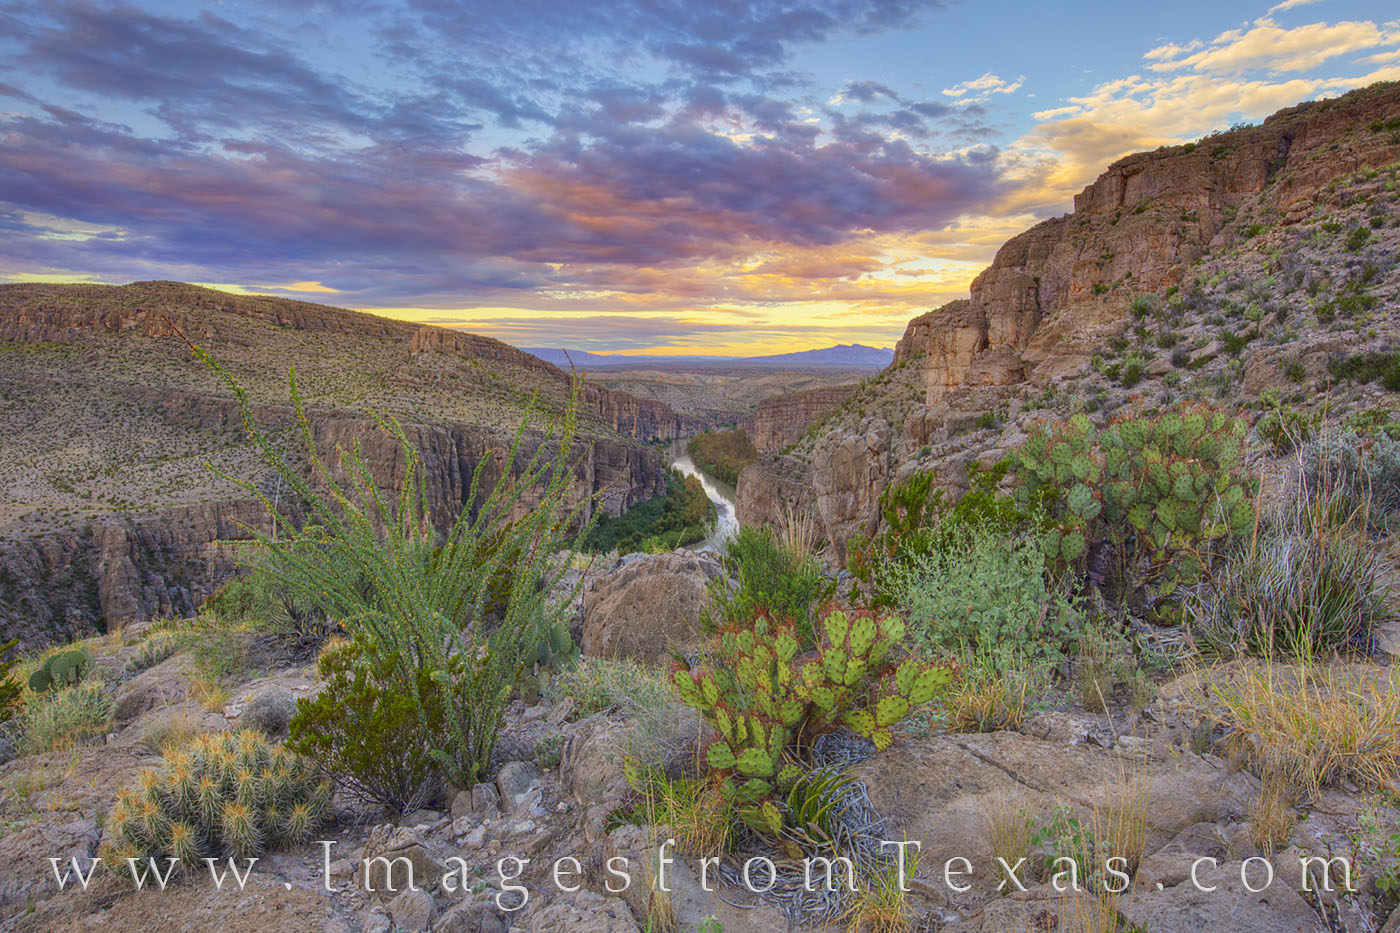 rio grande, hot springs trail, big bend, border, sunrise, morning, hiking texas, big bend hikes, cacti, photo